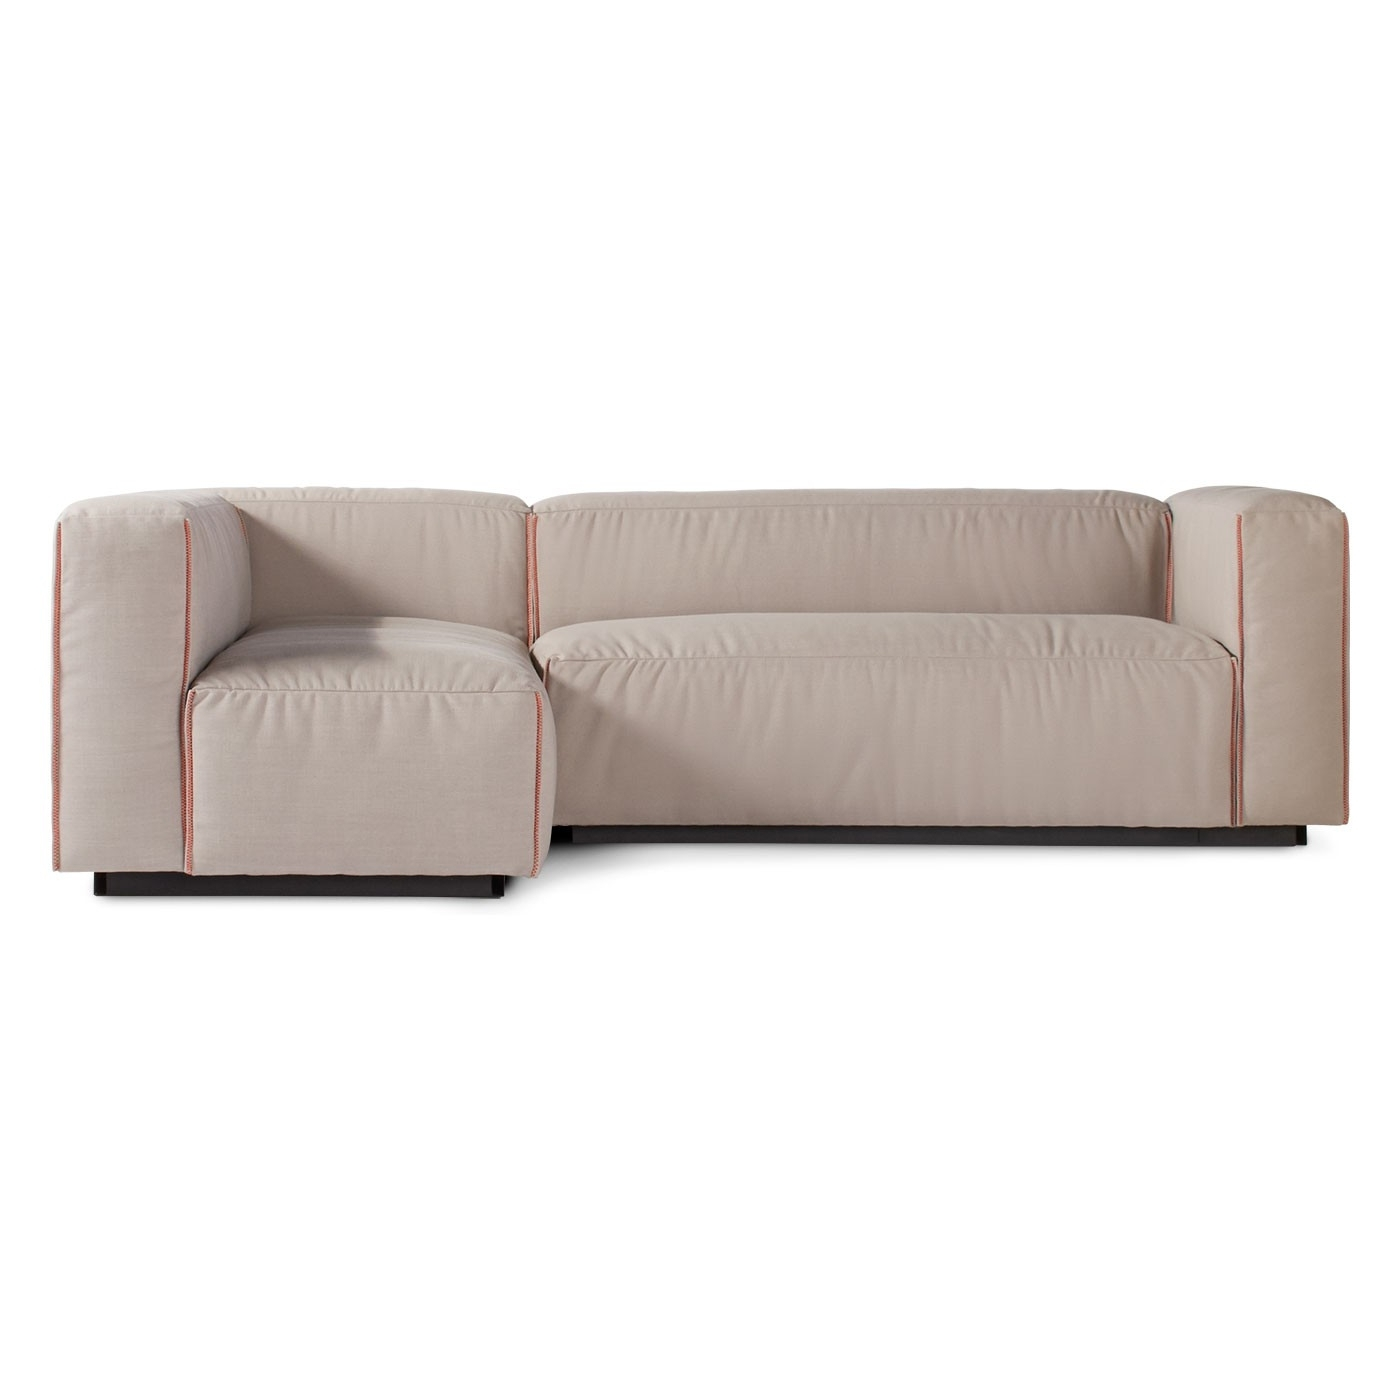 Leons Sectional Sofas Throughout Most Popular Sectional Sofa Design: Elegant Small Modern Sectional Sofa (View 7 of 15)